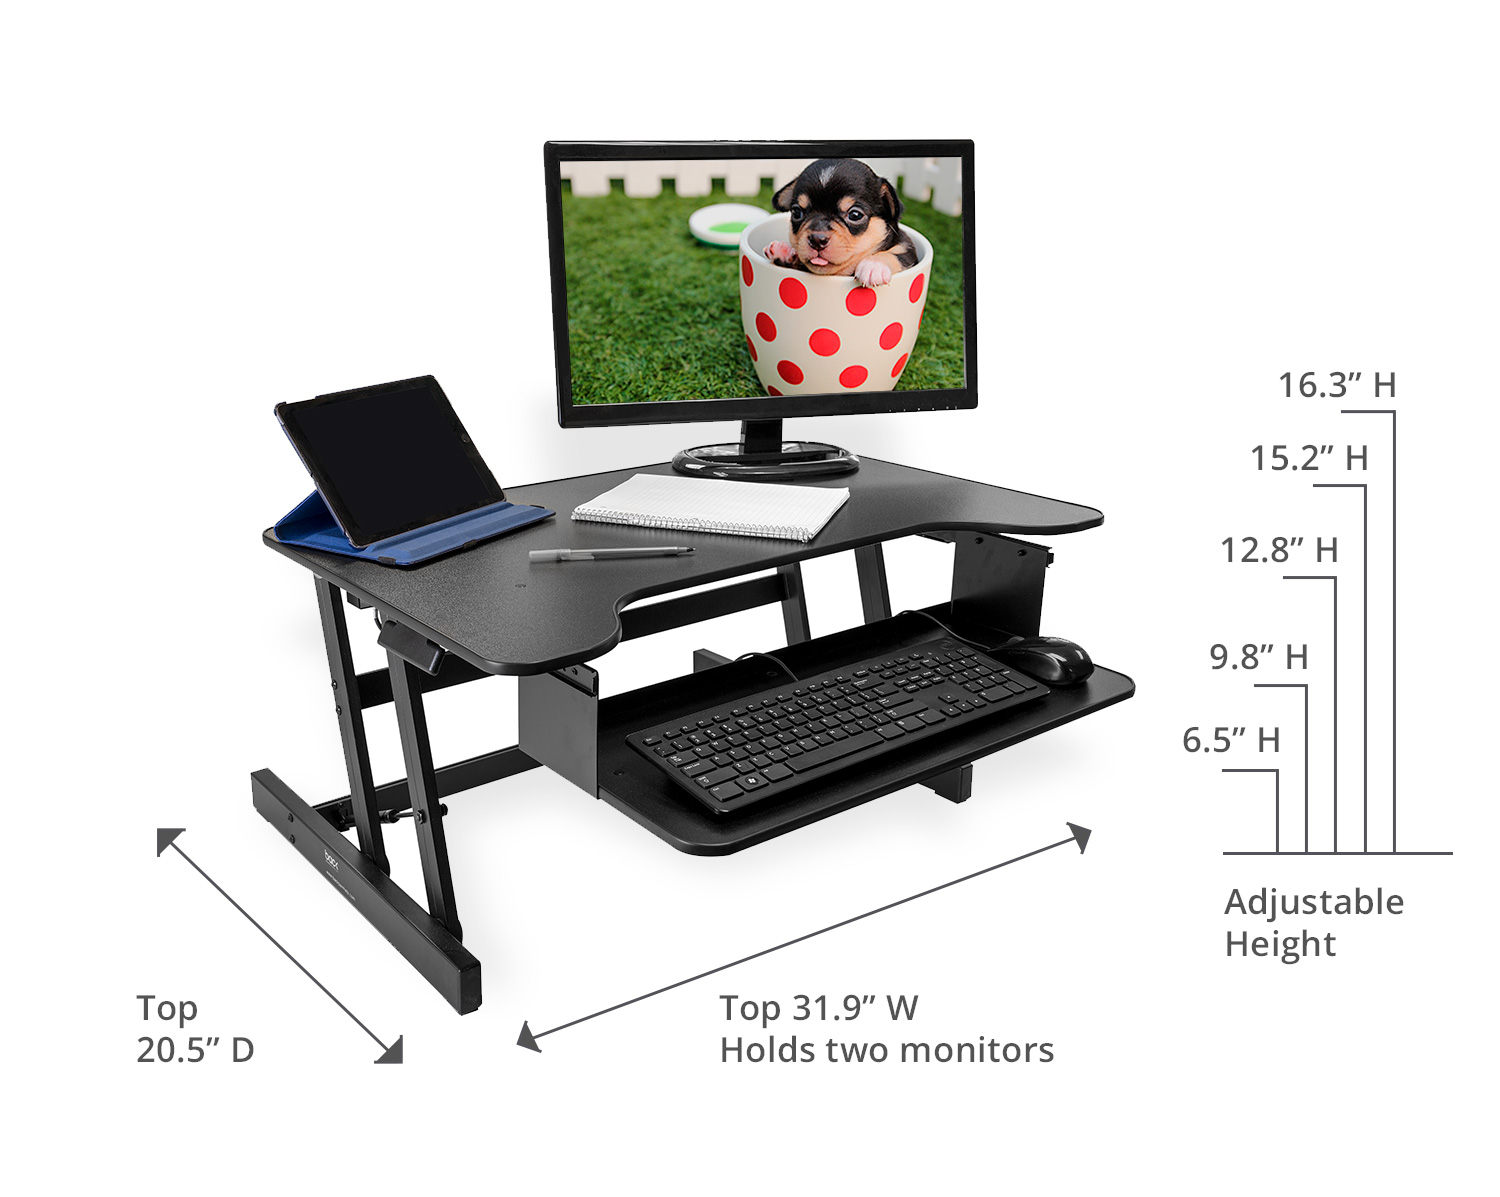 Standing Desk Measurements and dimensions